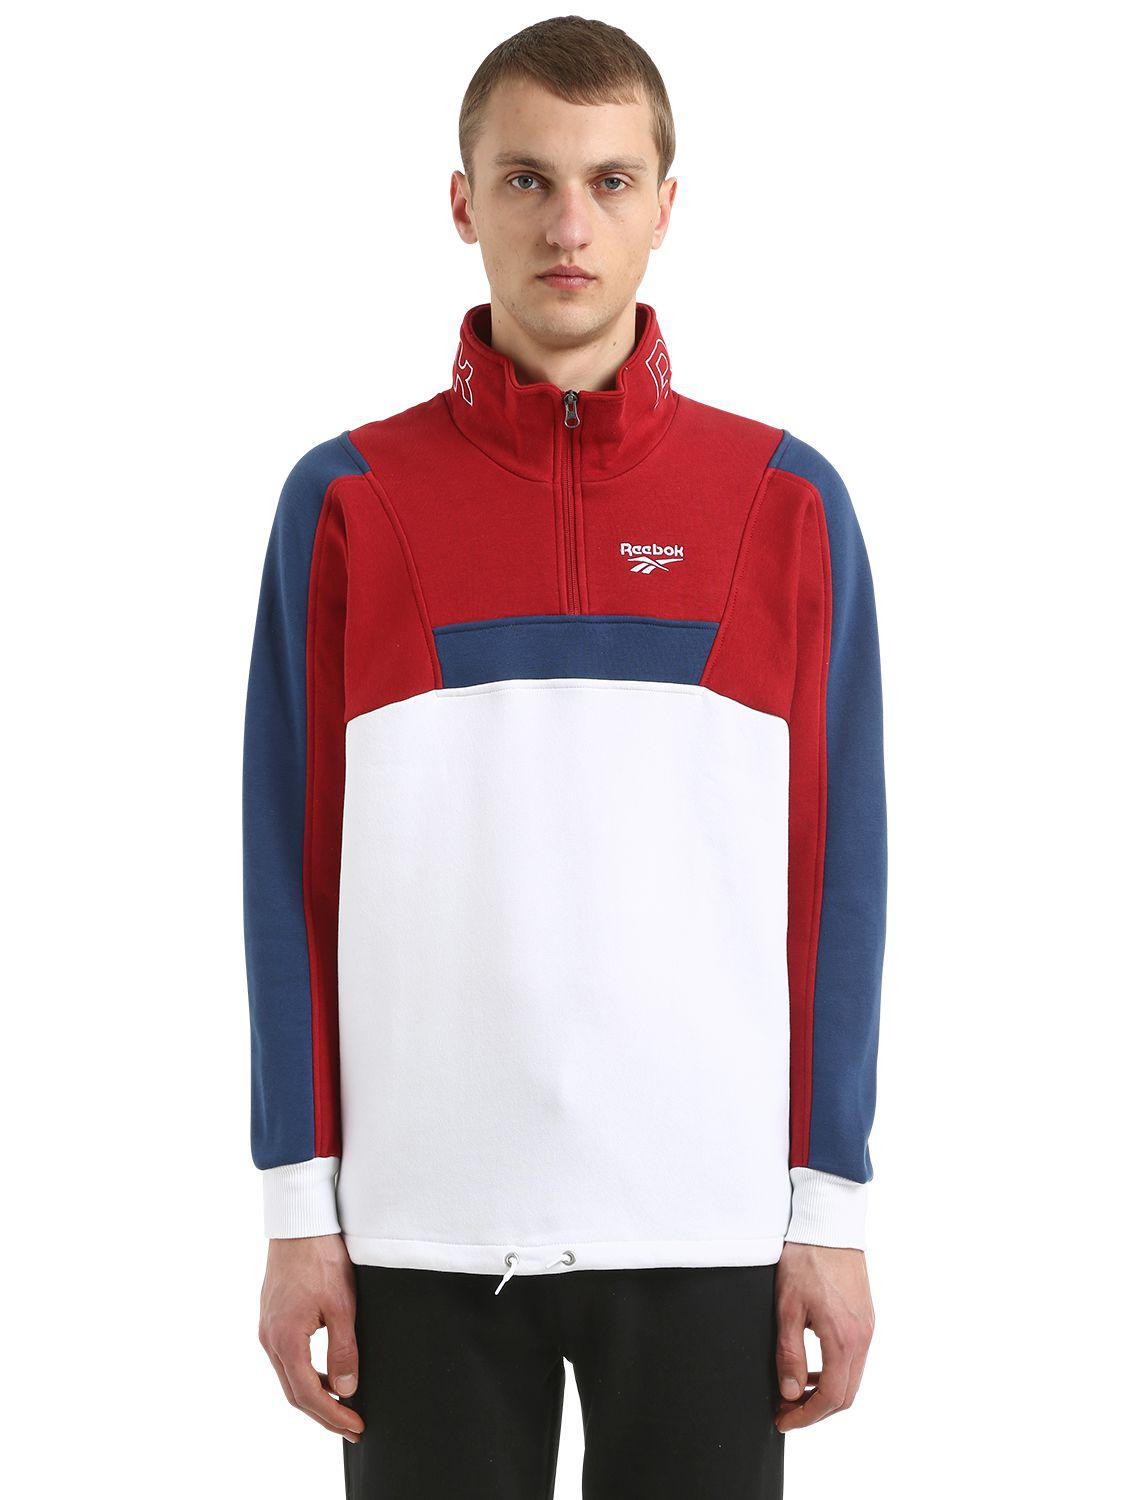 80e7d4fa5f5a2 Reebok Graphic Organic Cotton Sweatshirt in Red for Men - Lyst